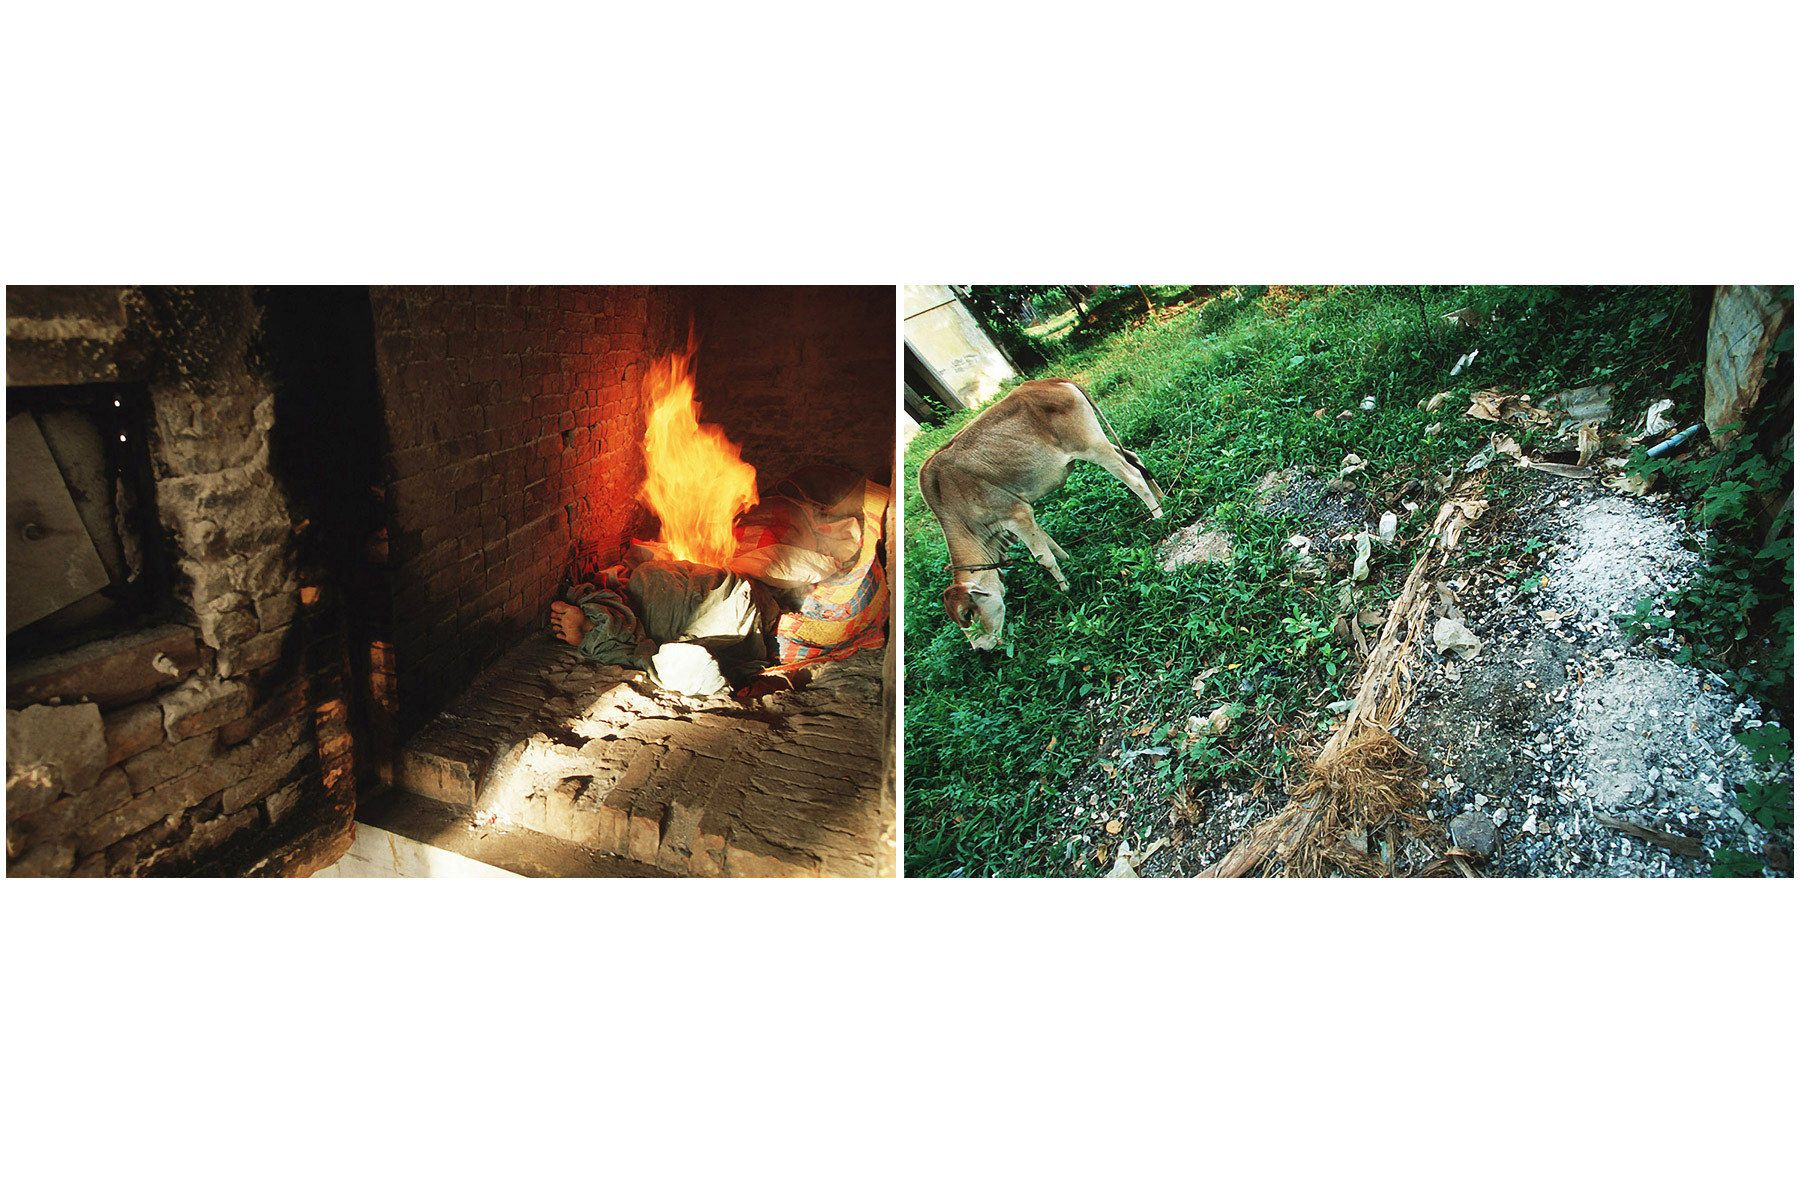 Left: A cremation of Aids patient. Right: Ashes of Aids patient were throw away in backyard.